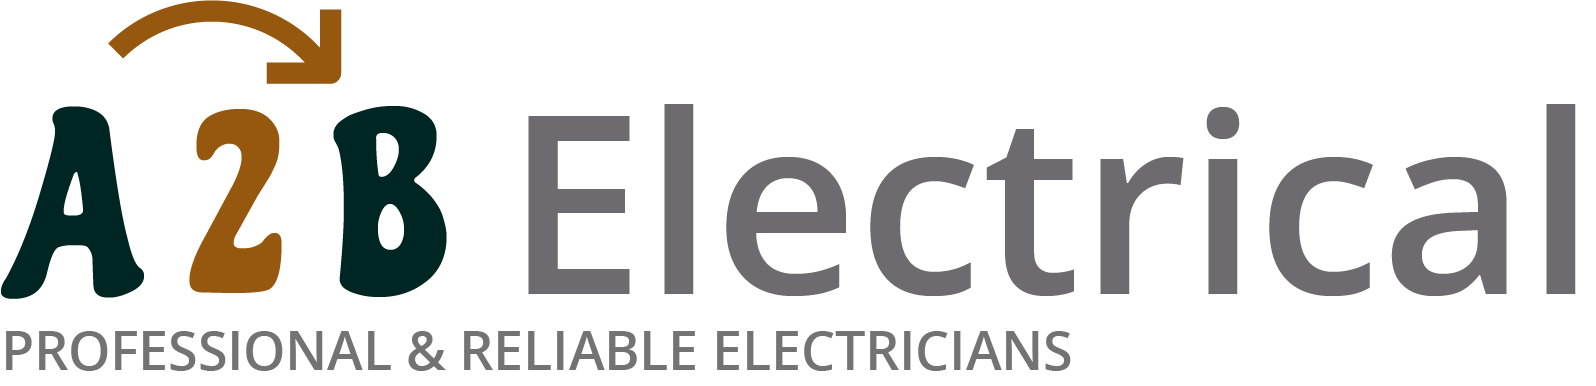 If you have electrical wiring problems in Morden, we can provide an electrician to have a look for you.